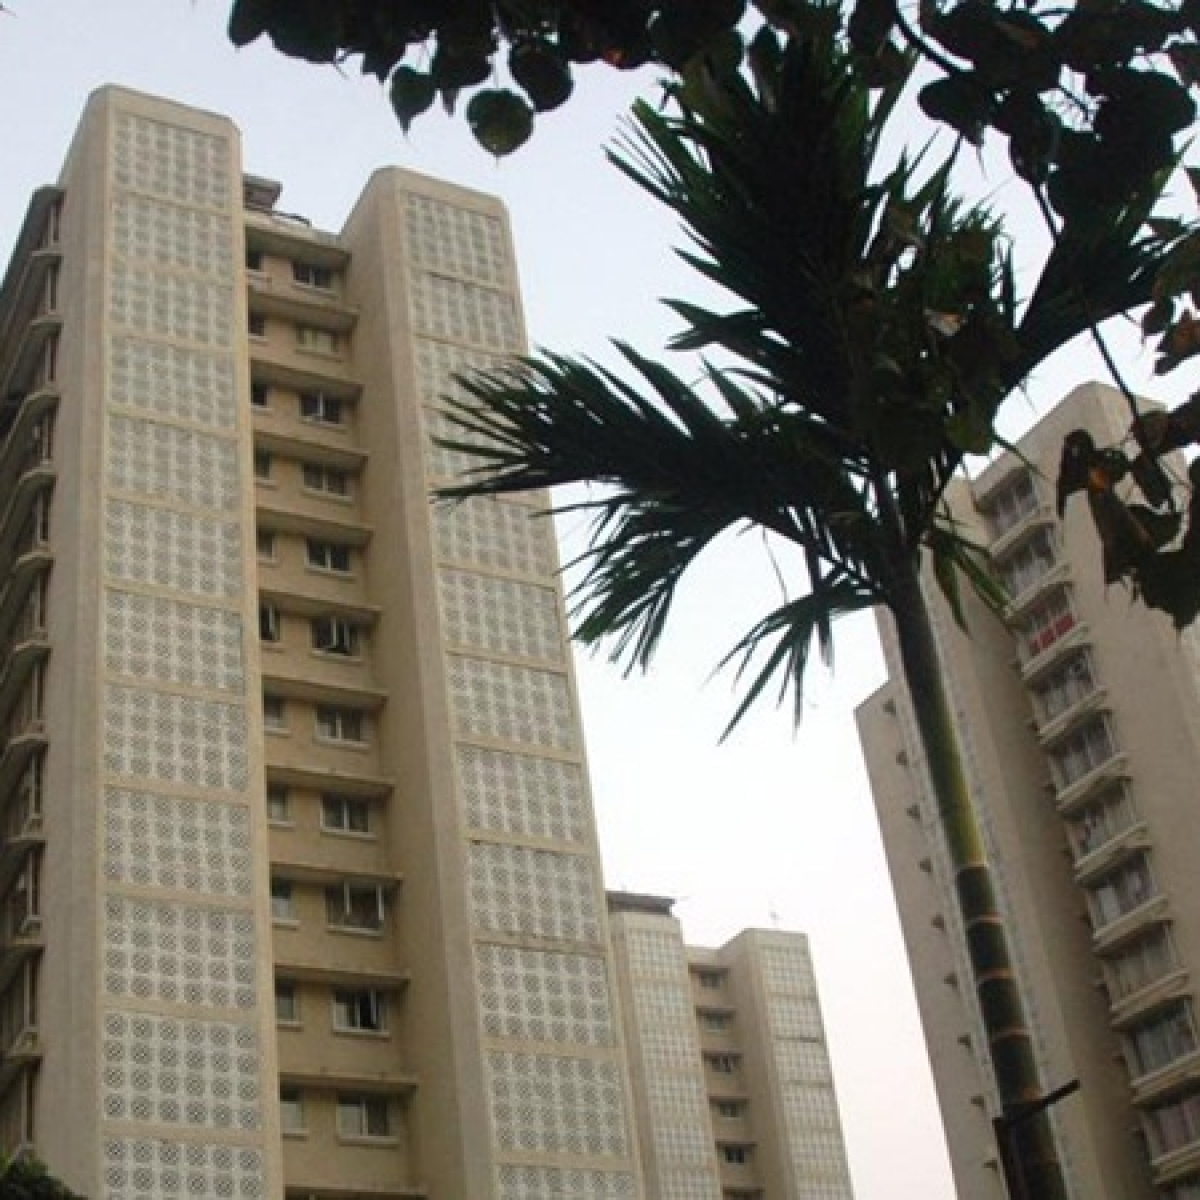 Maharashtra government approves design for reconstruction of 50-storey tallest residential tower in Nariman Point for MLAs